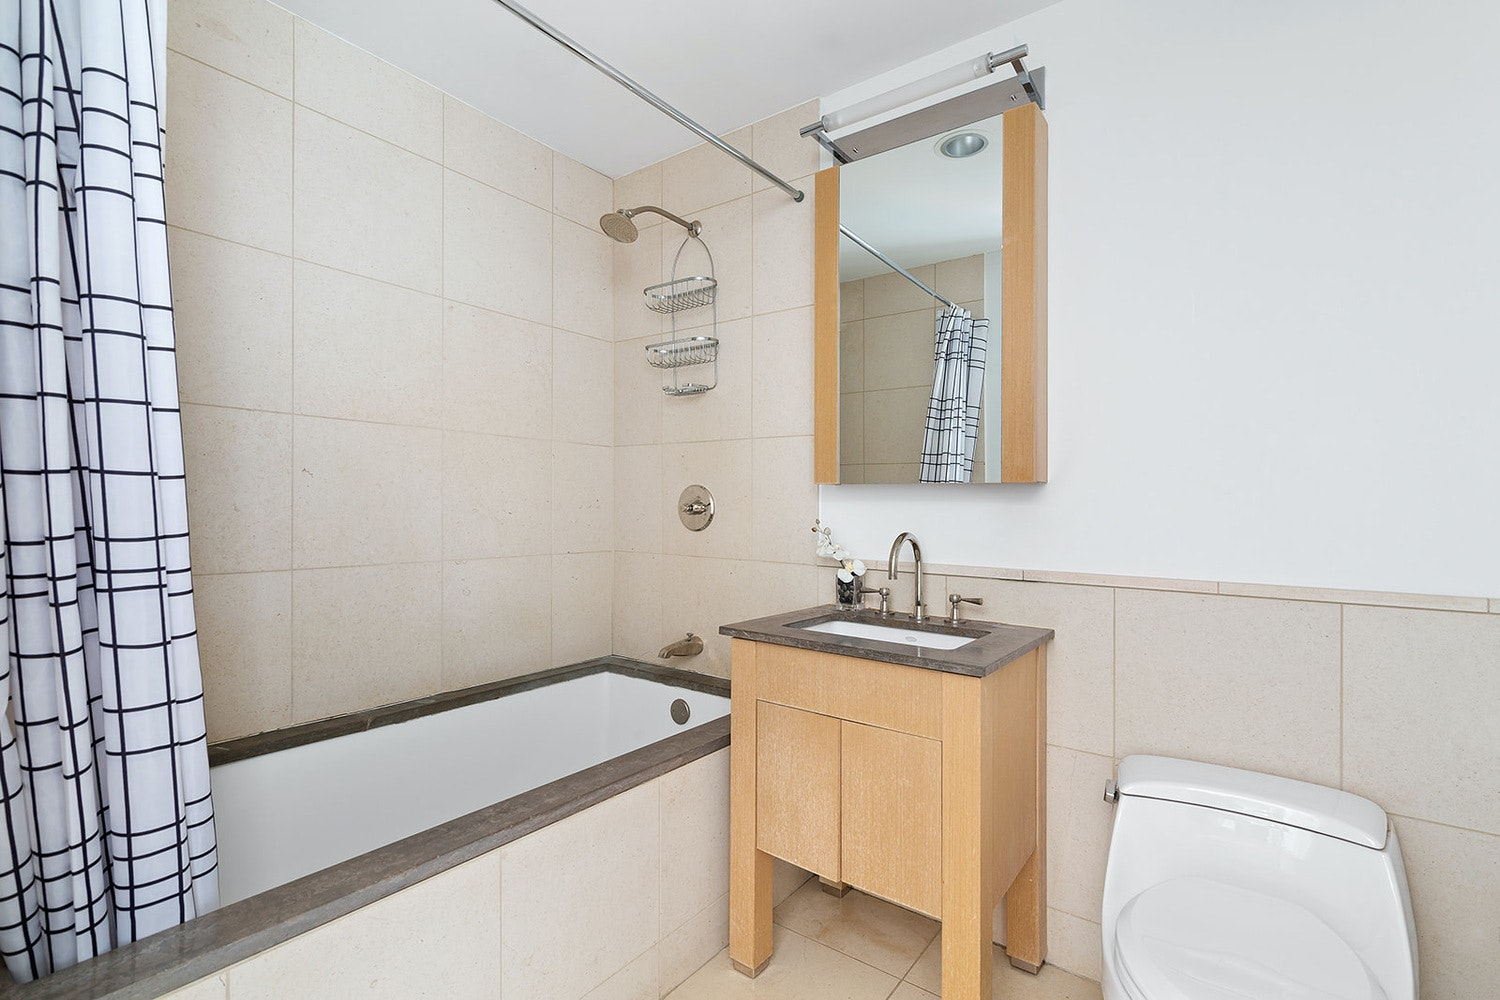 primary photo for 350 West 42nd Street 58-F, New York, NY 10036, US